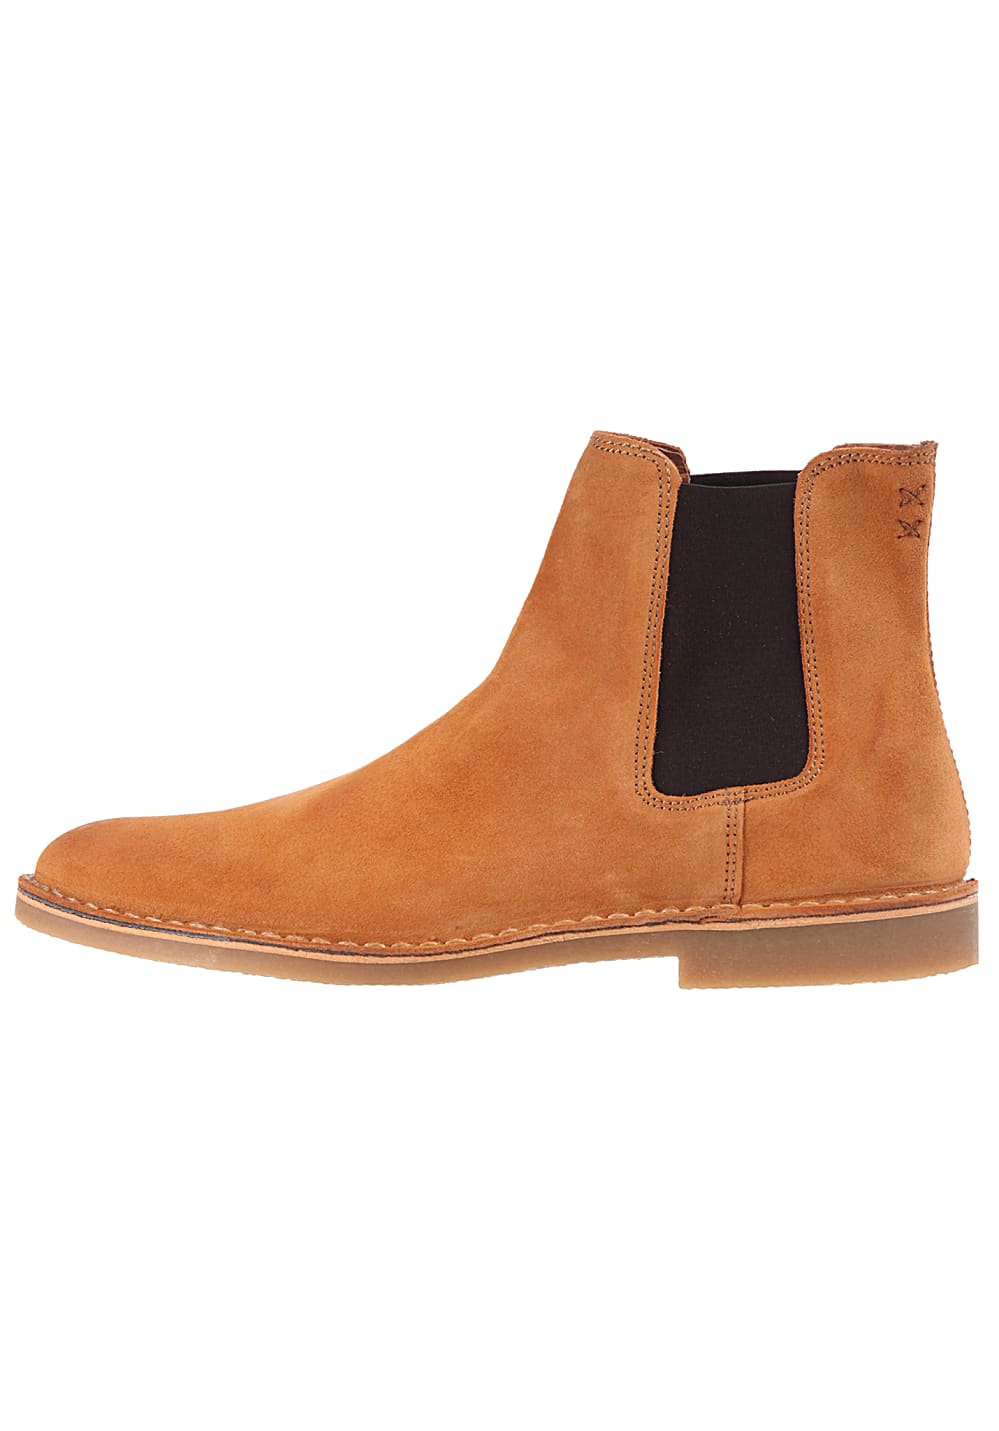 Selected Slhroyce Chelsea Suede - Fashion Schuh...